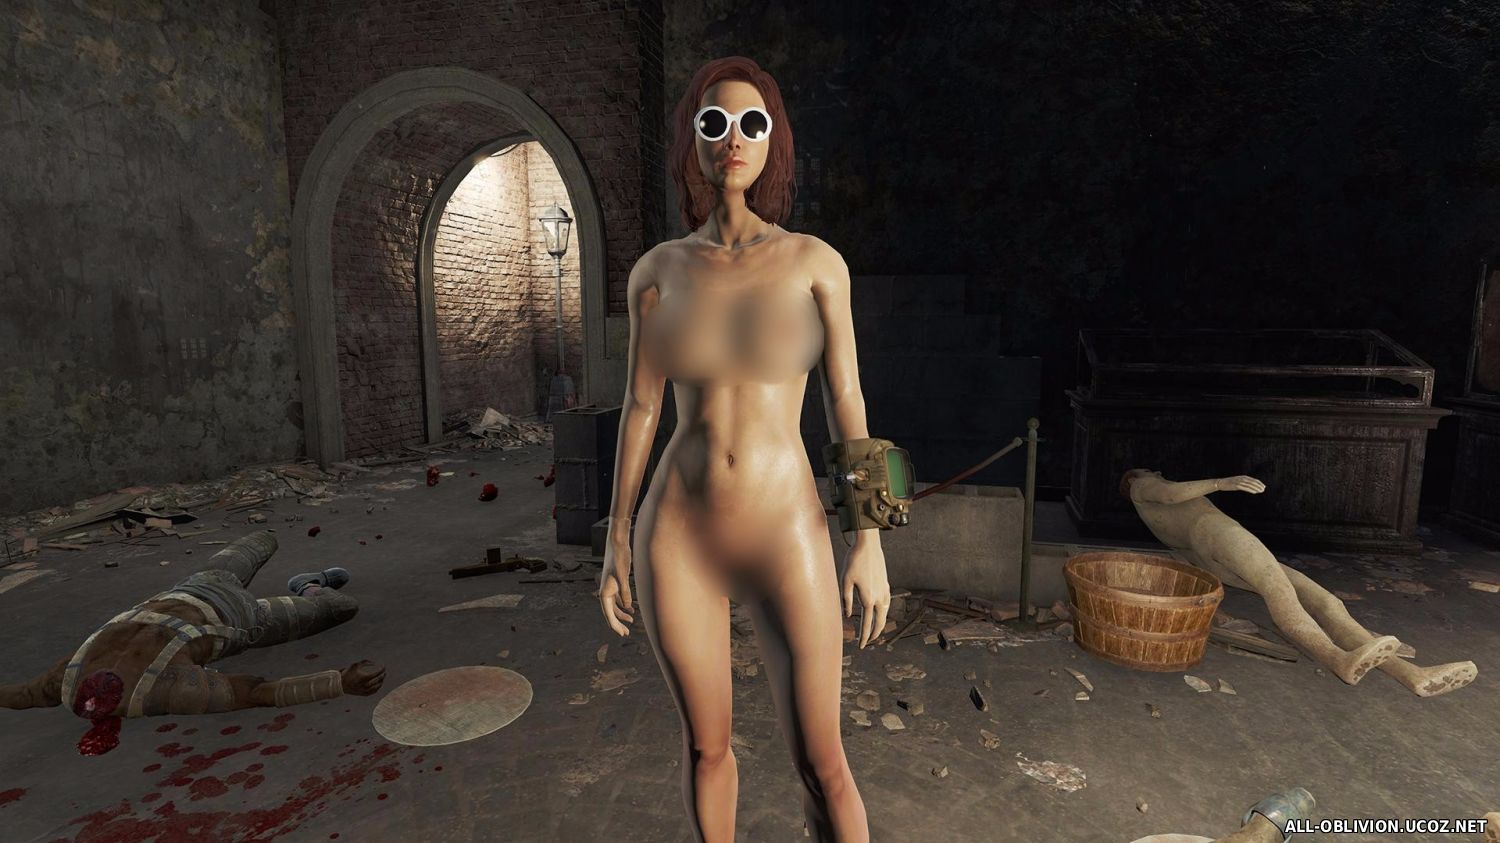 Fallout nude mods smut streaming